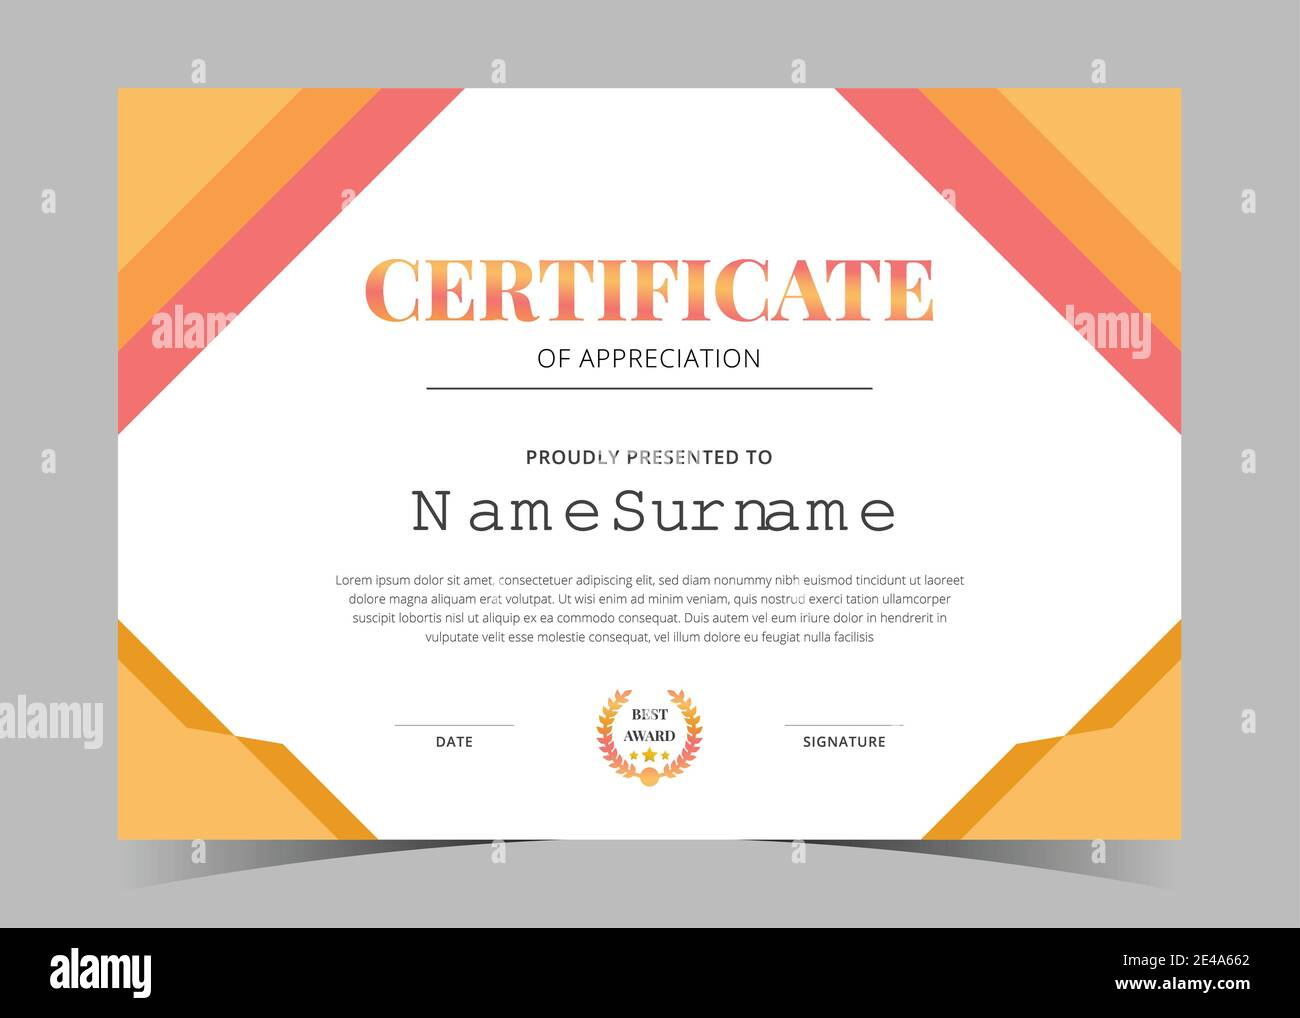 Page 24 - Certificate Of Qualification High Resolution Stock Pertaining To Crossing The Line Certificate Template